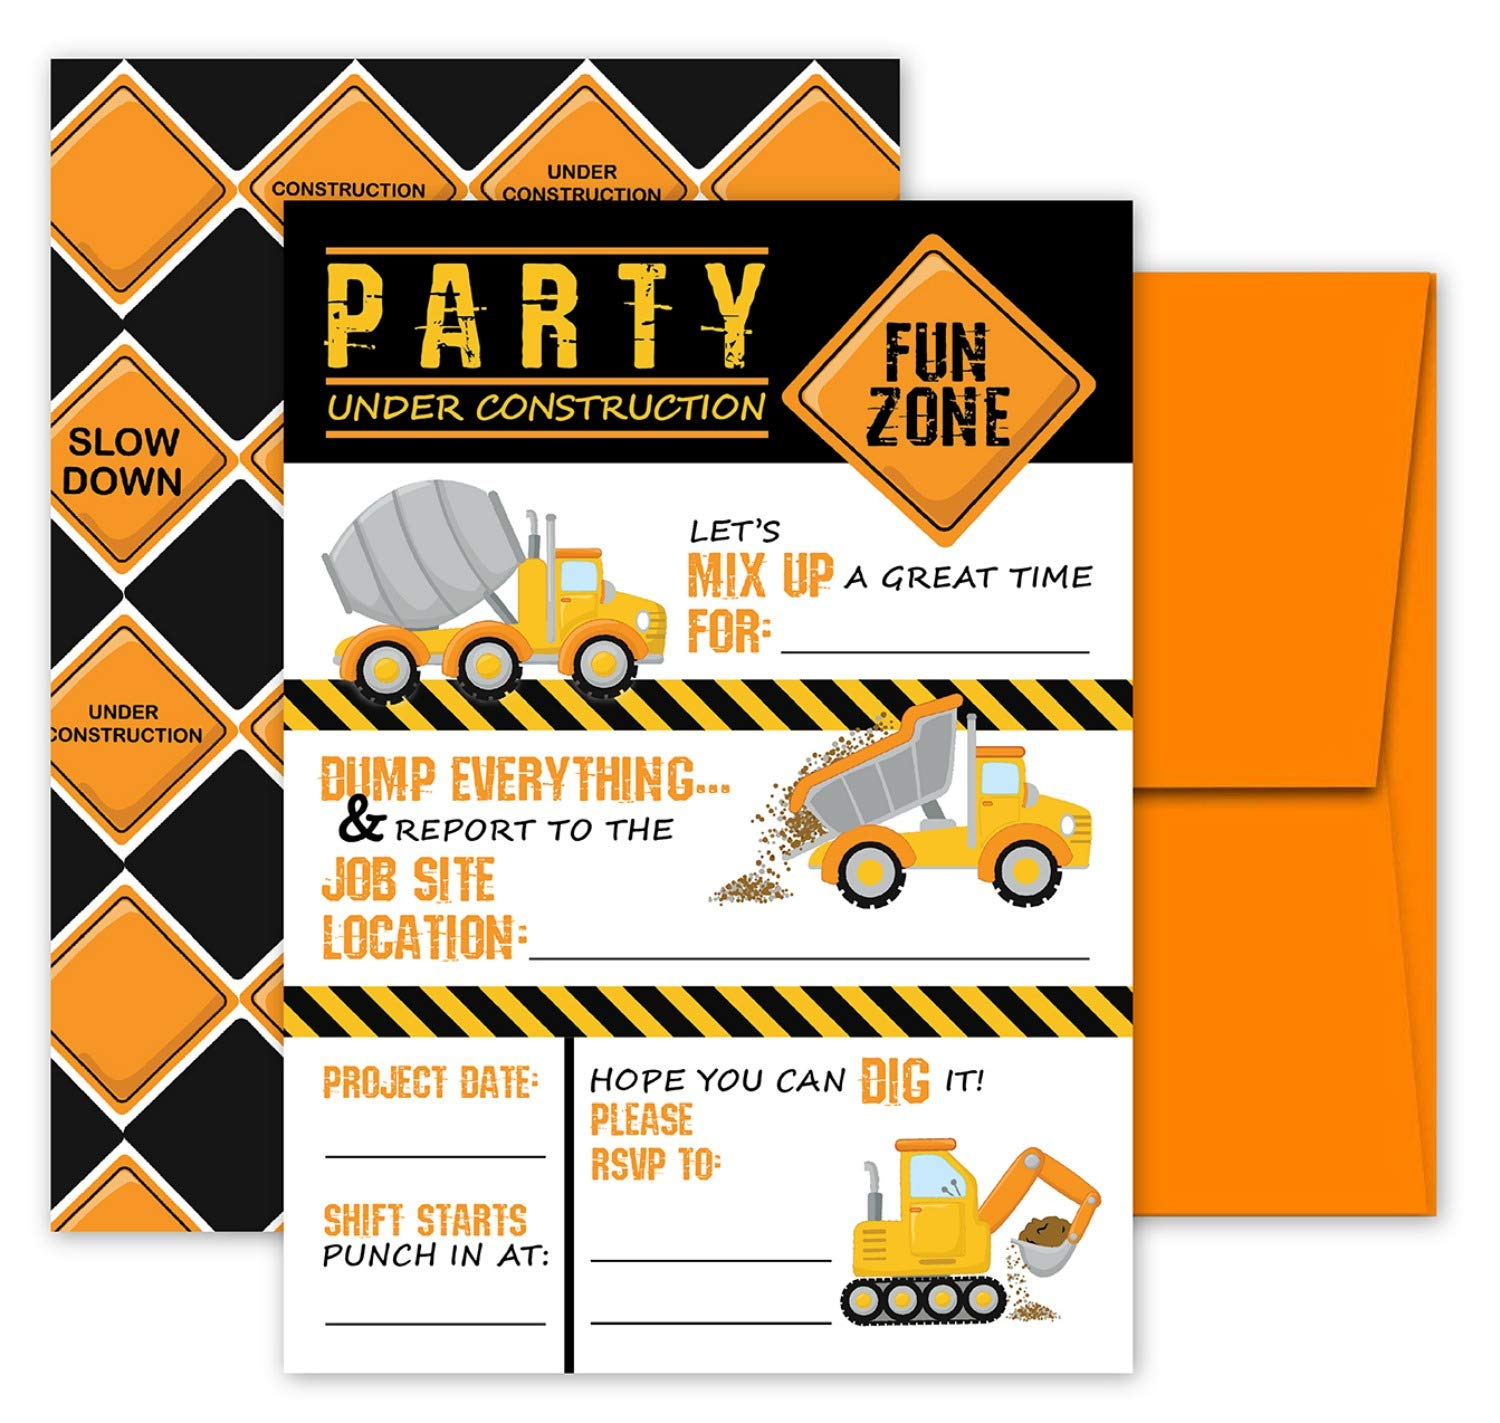 Deluxe Construction Dump Truck Birthday Party Invitations for Boys, 20 Double Sided Large 5 x 7 Flat Fill In Invites with Orange Envelopes, Kids Party Supplies by Pink Pixie Studio (Image #1)